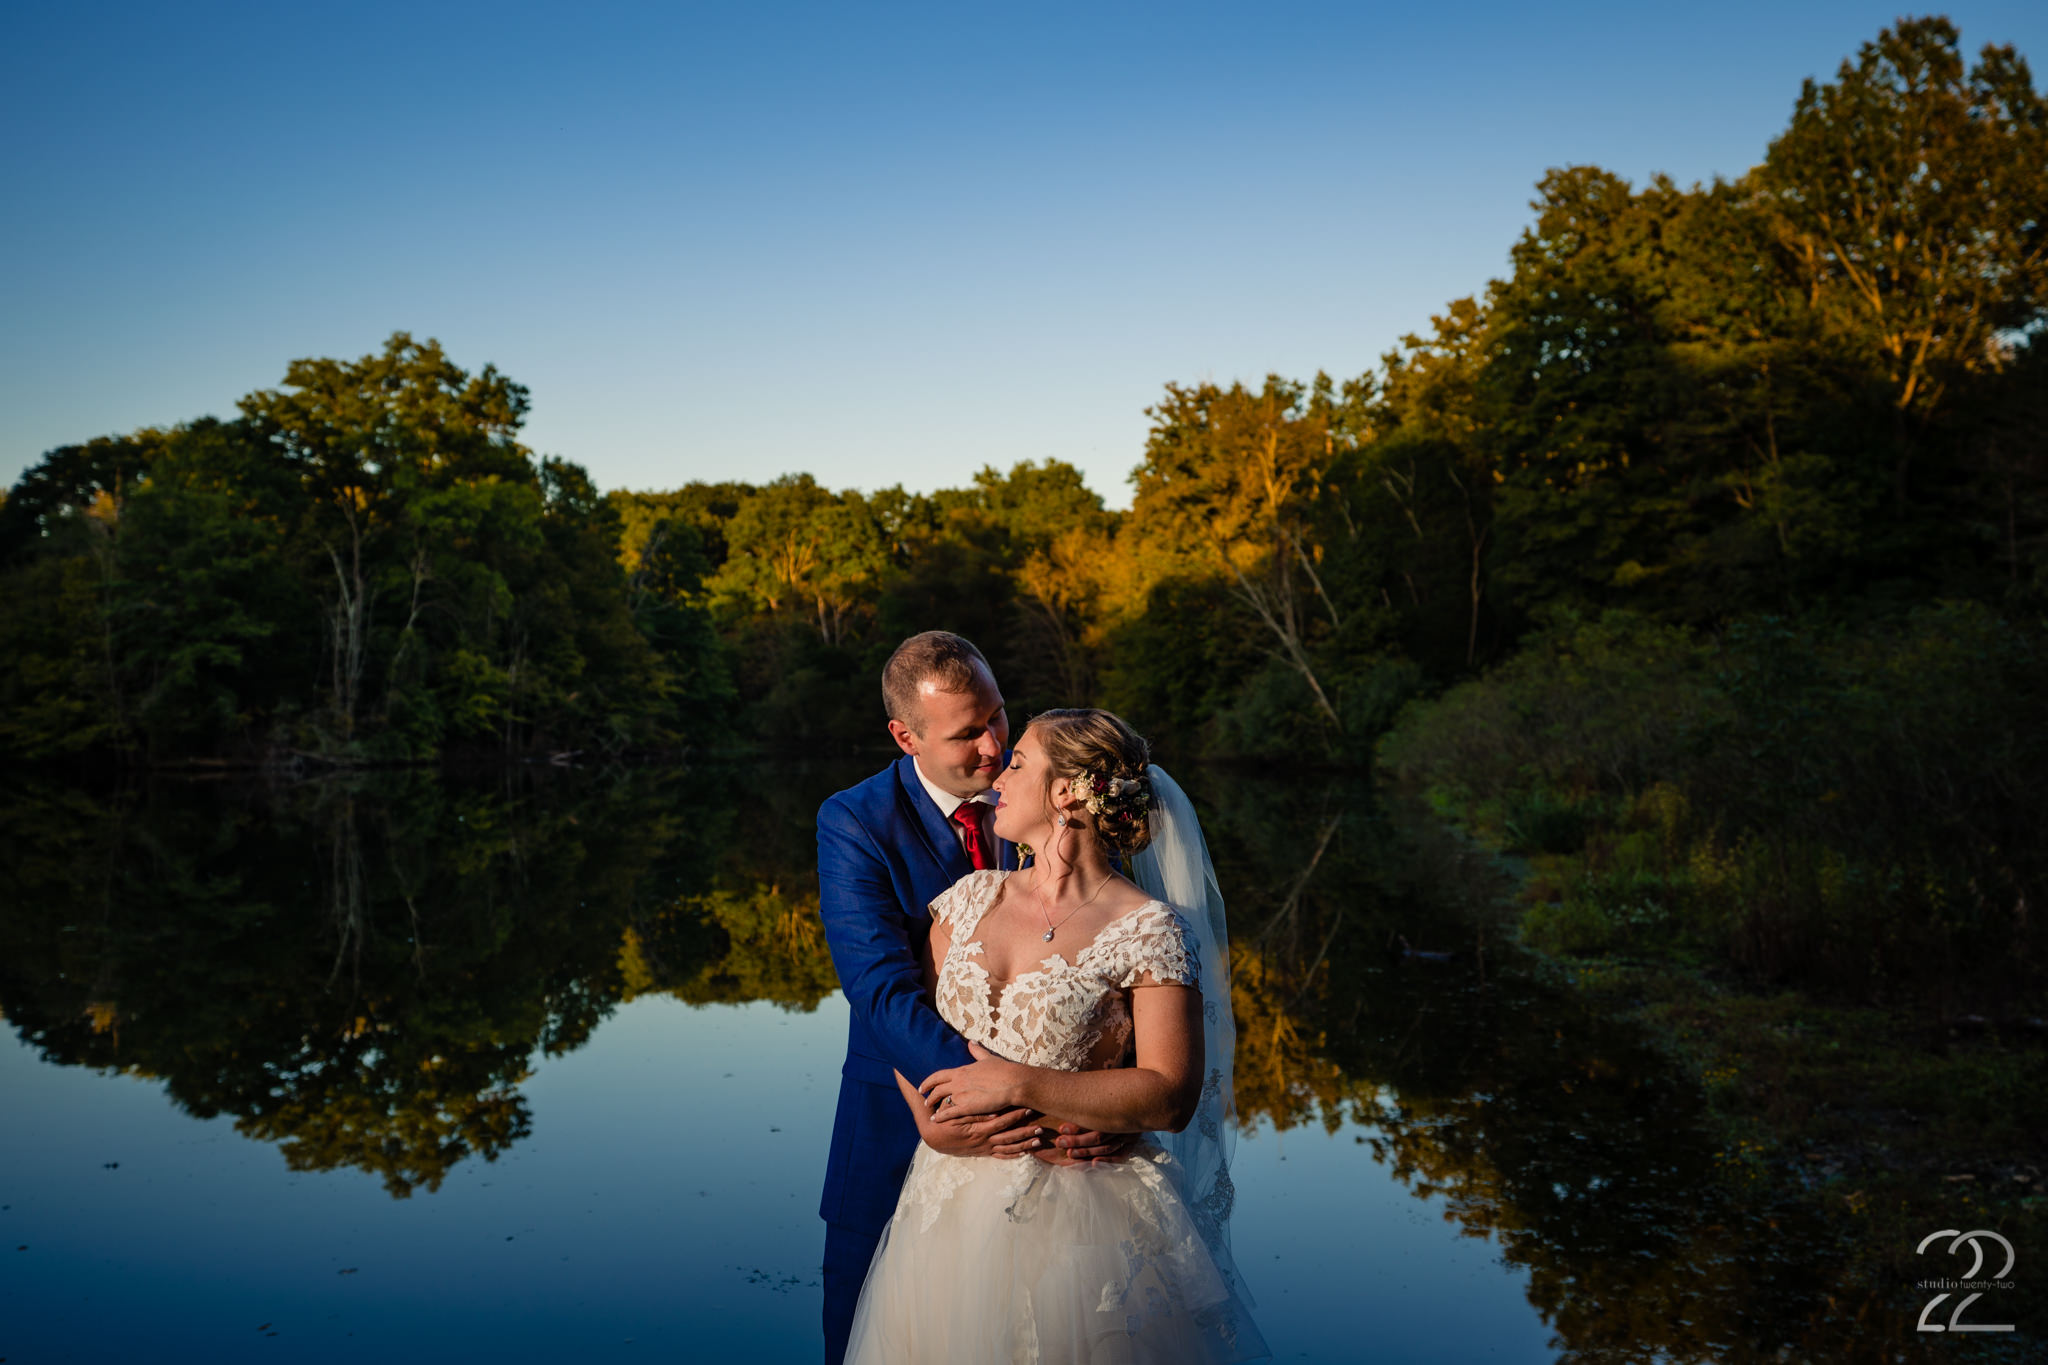 Autumn Weddings - Cincinnati Wedding Photographers - Studio 22 Photography